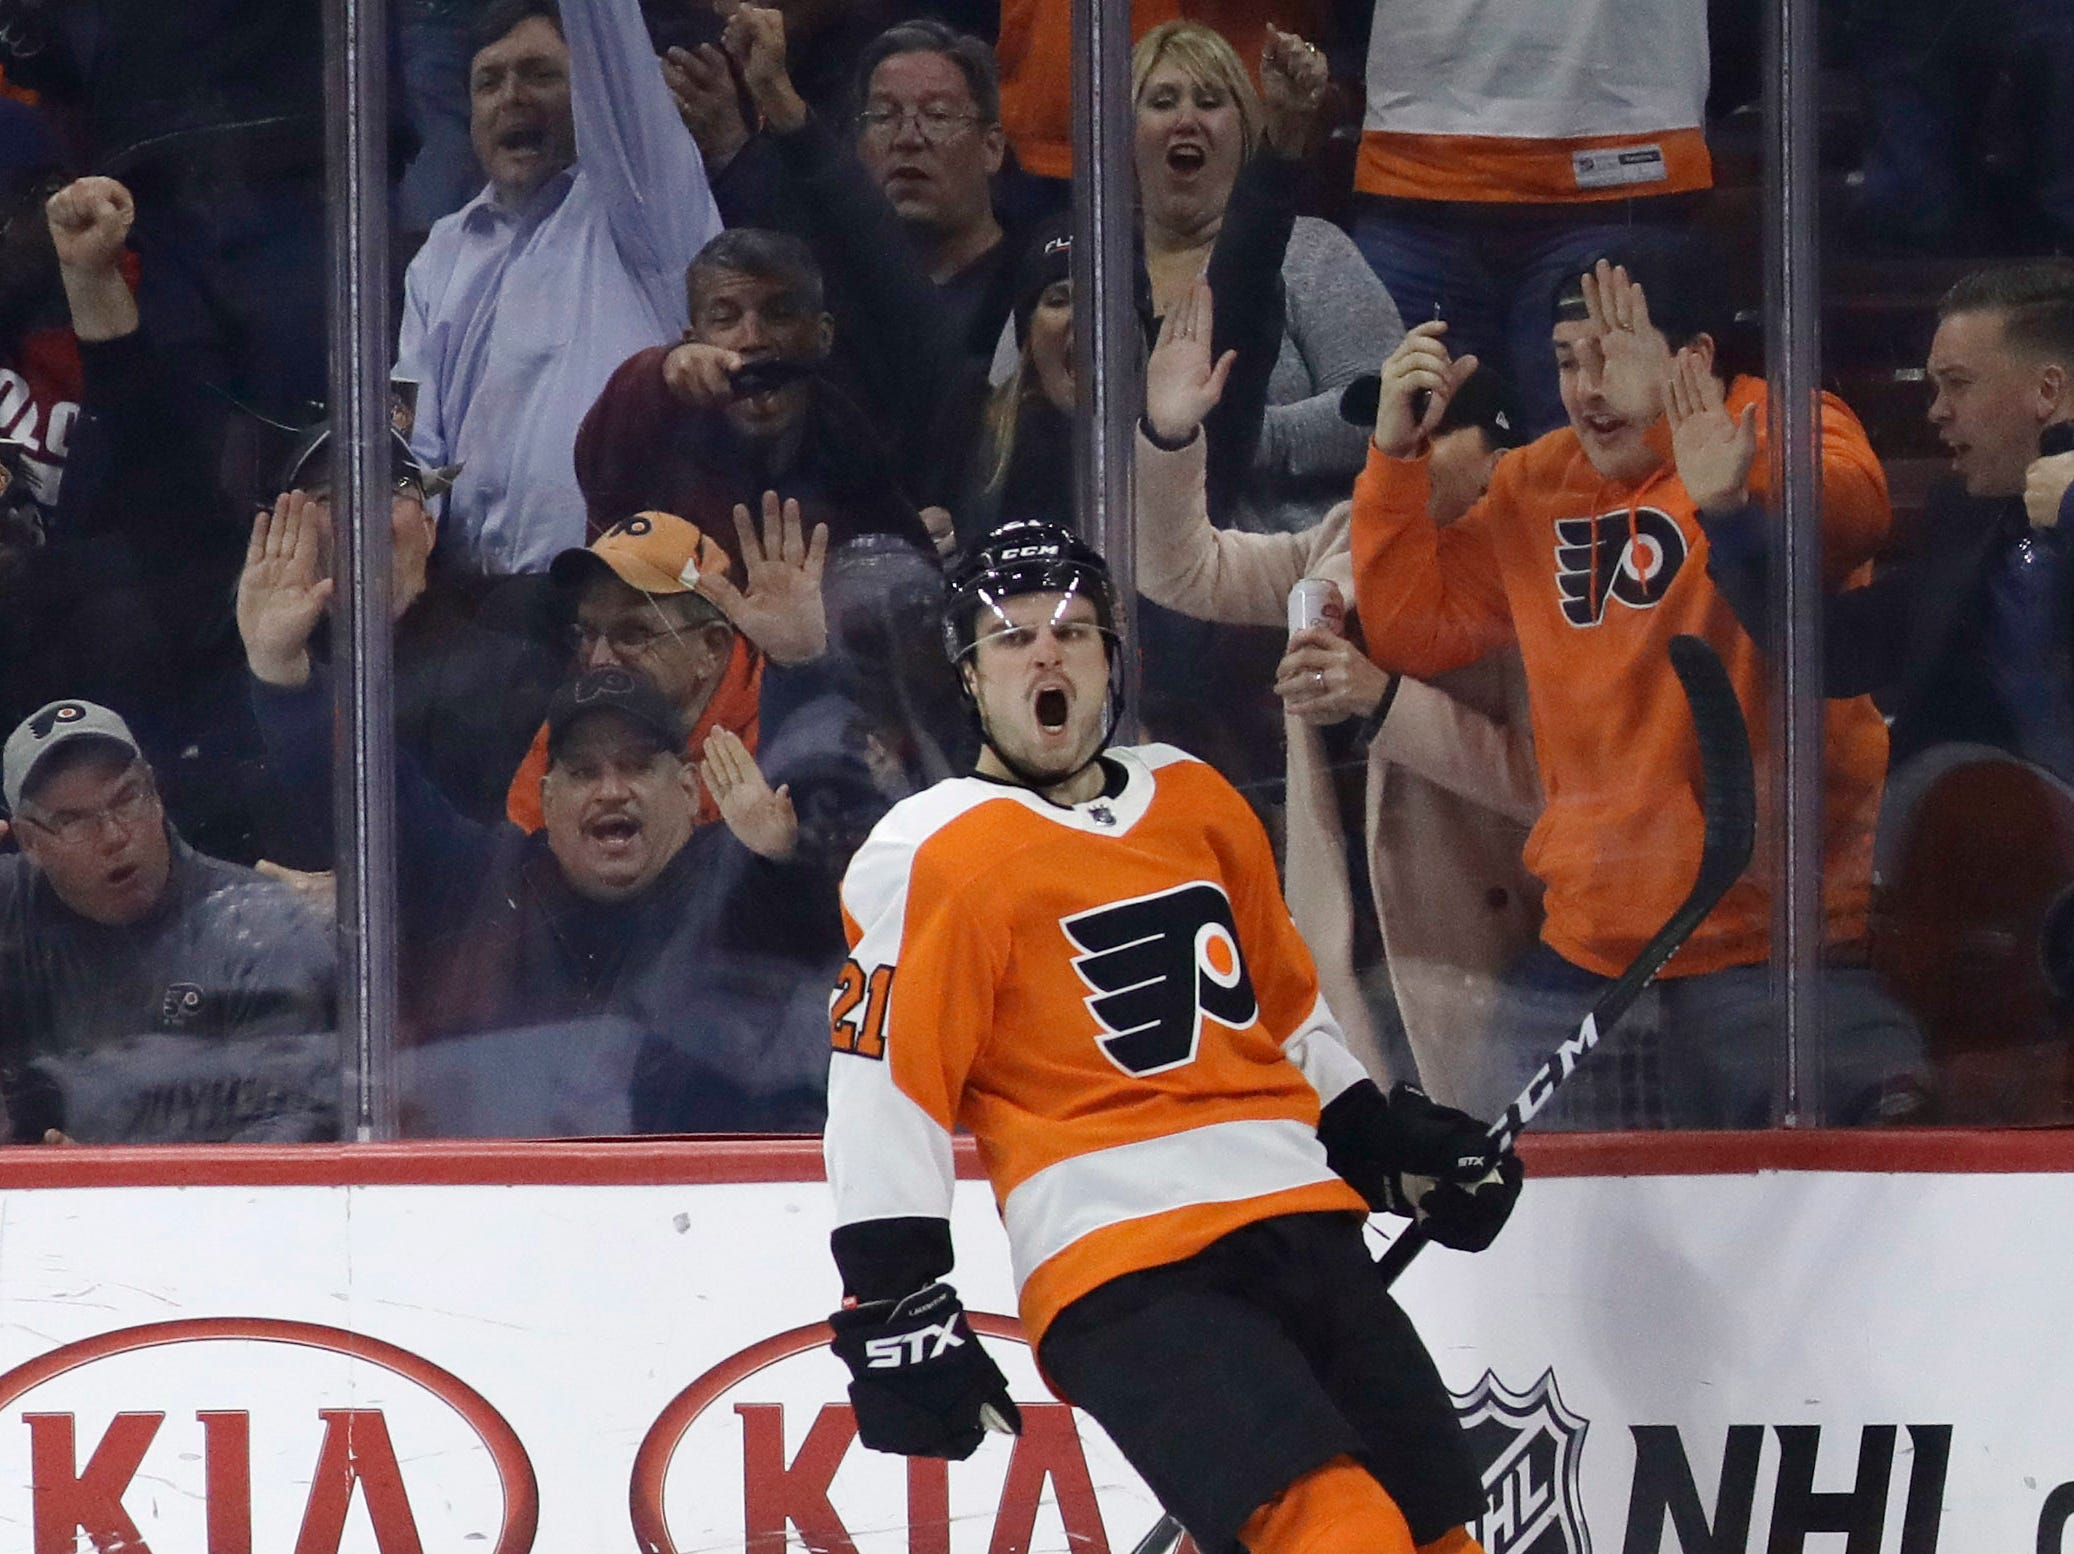 Philadelphia Flyers' Scott Laughton celebrates after scoring a goal during the third period of an NHL hockey game against the Arizona Coyotes, Thursday, Nov. 8, 2018, in Philadelphia. Philadelphia won 5-4 in overtime. (AP Photo/Matt Slocum)